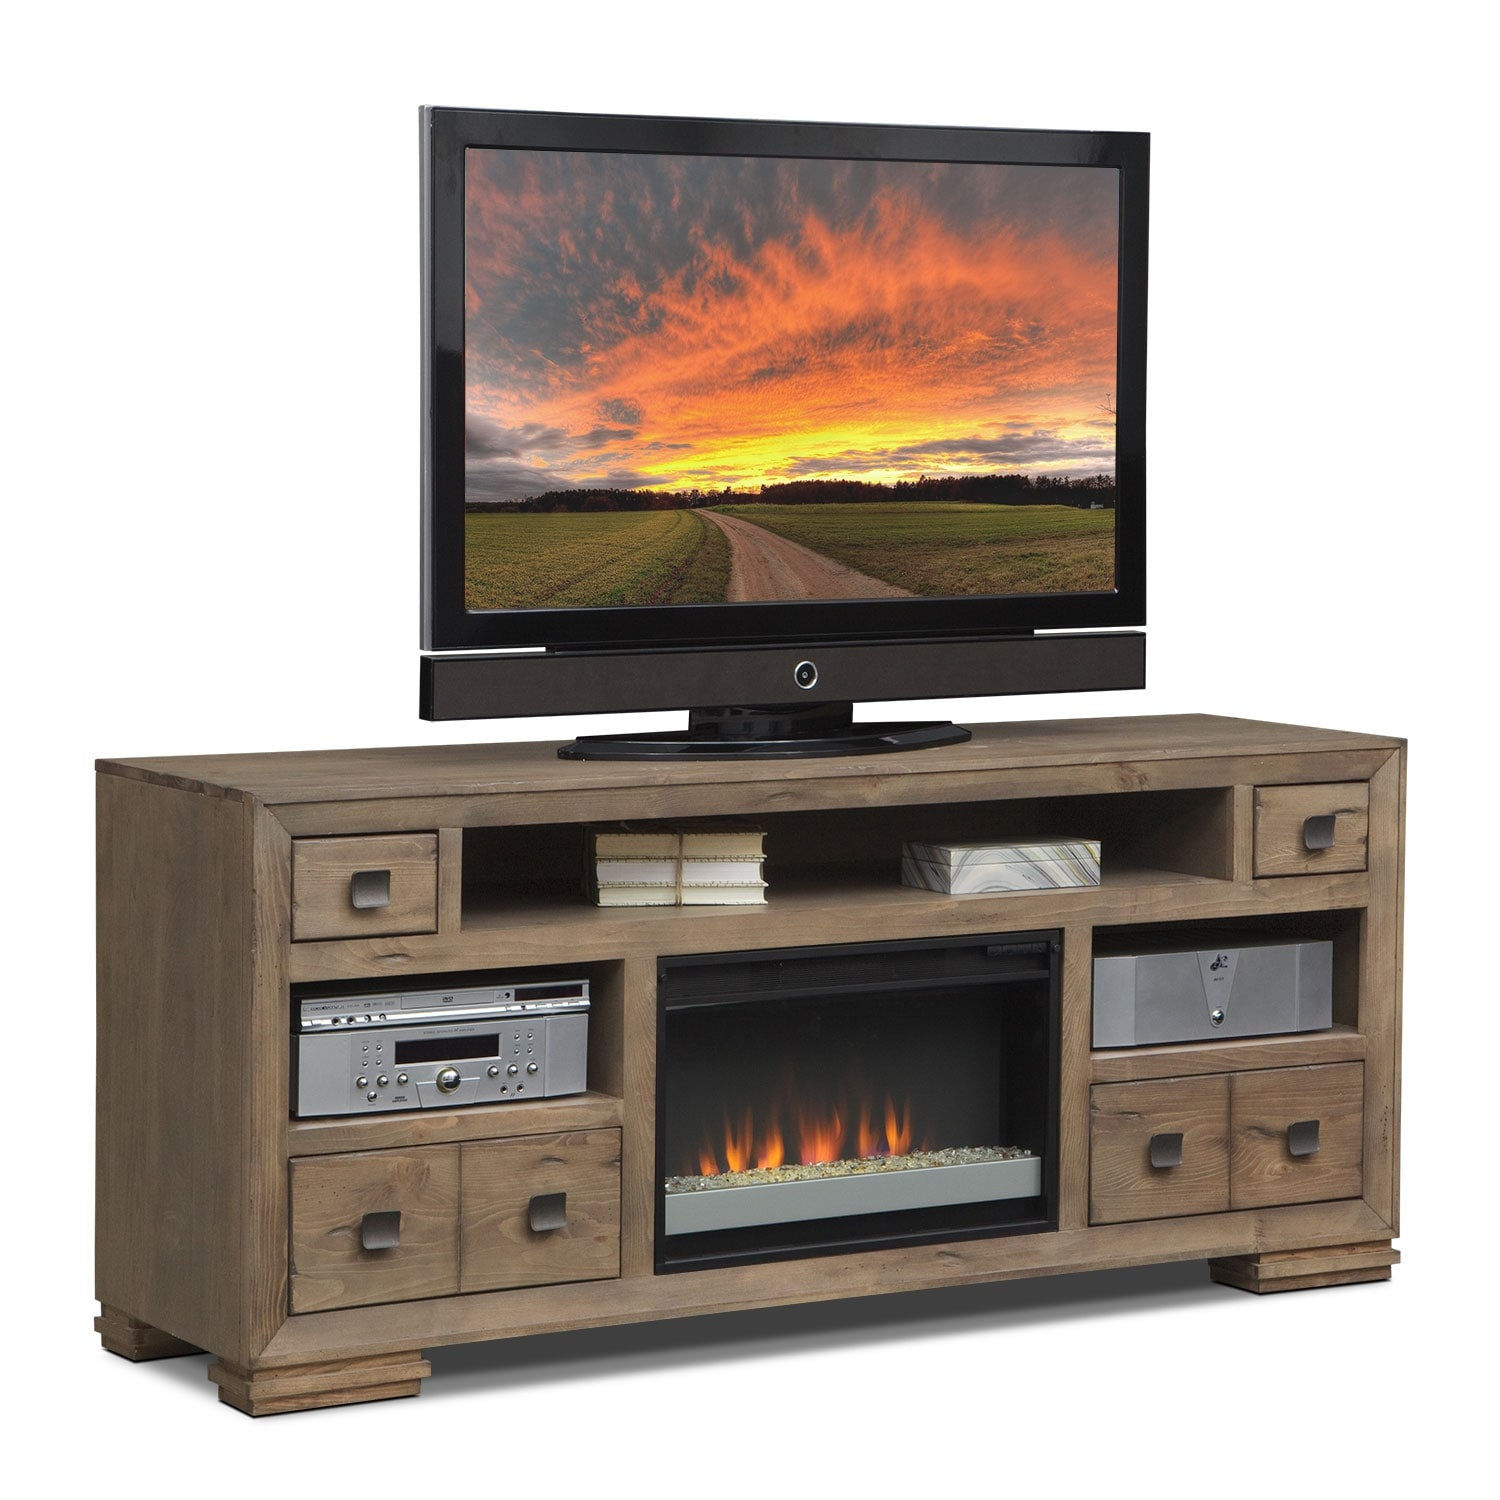 Mesa 74 Quot Fireplace Tv Stand Value City Furniture